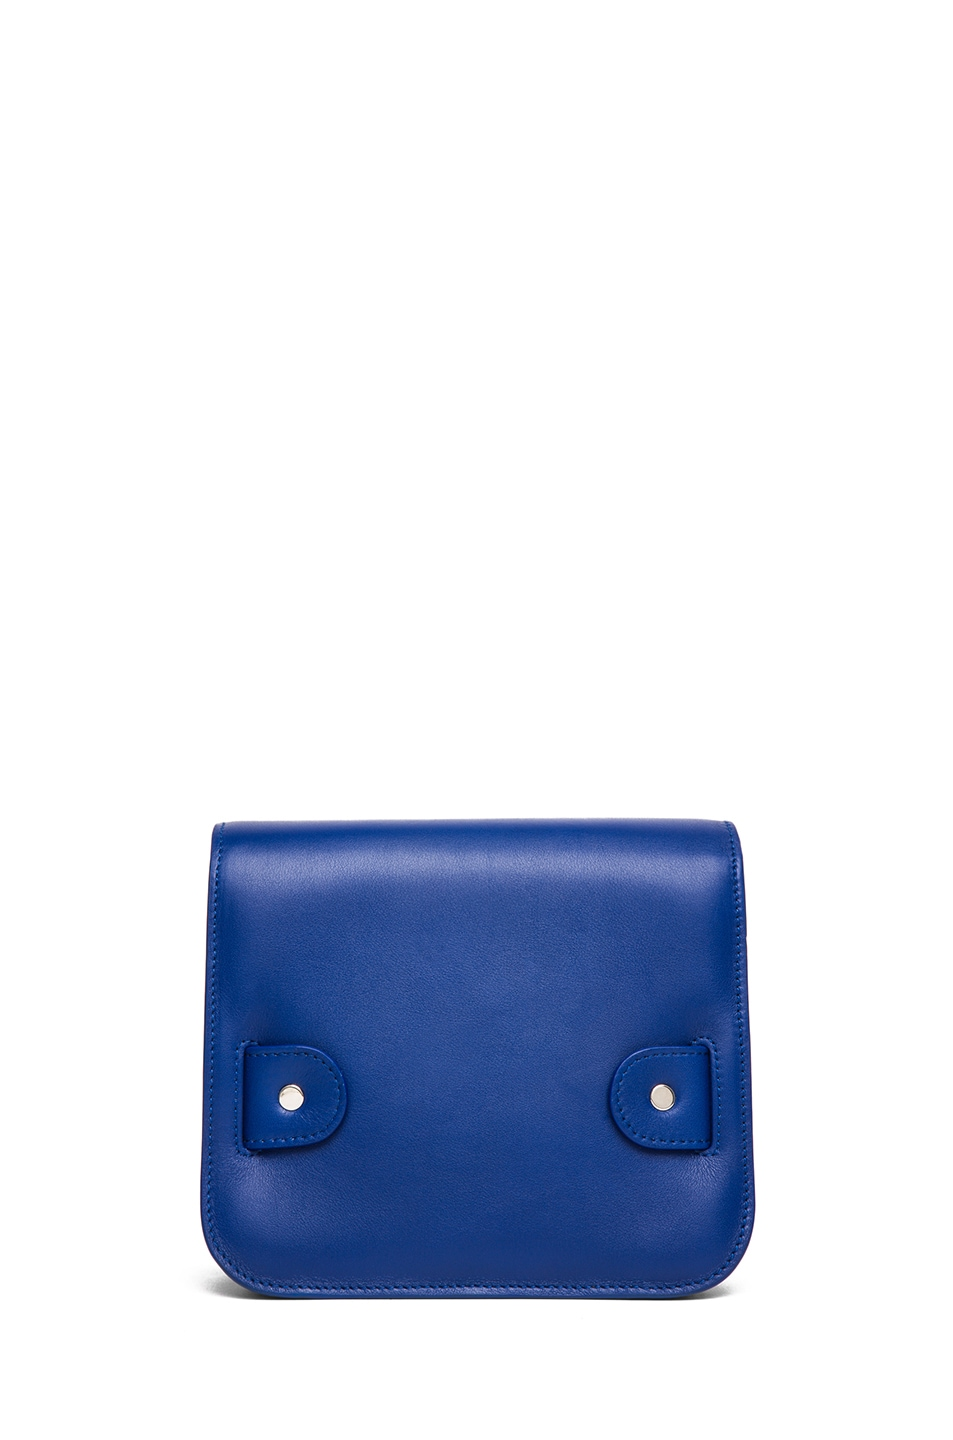 Image 2 of Proenza Schouler Tiny PS11 Smooth Leather Shoulder Bag in Royal Blue